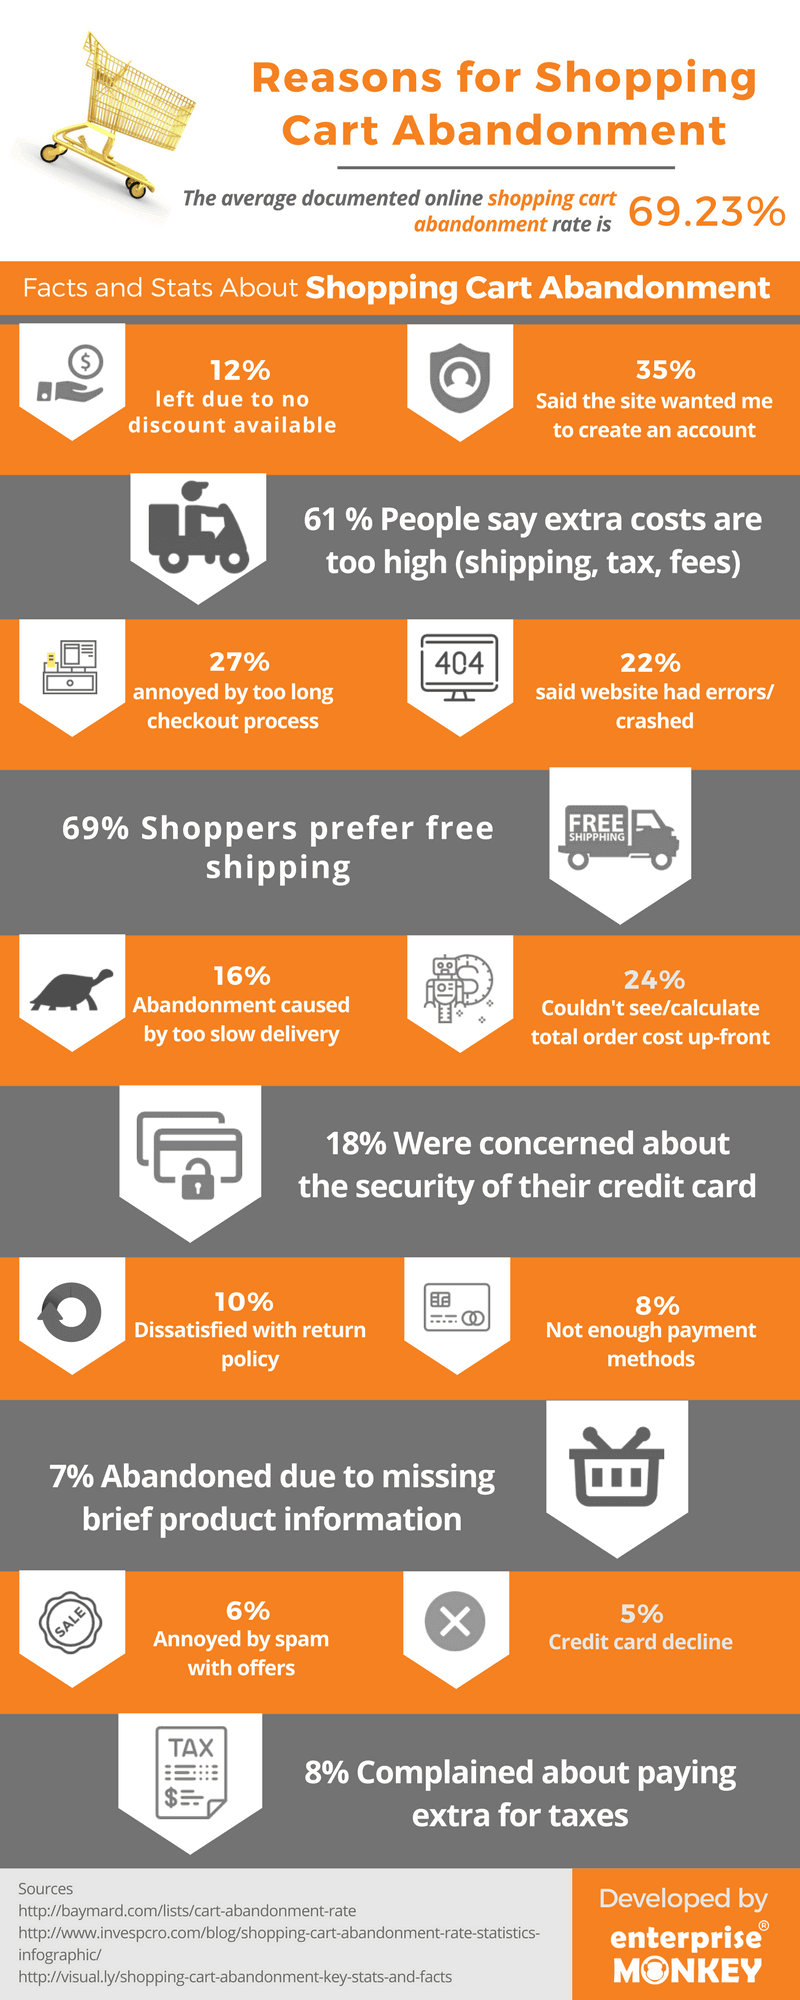 reasons for shopping cart abandonment infographic